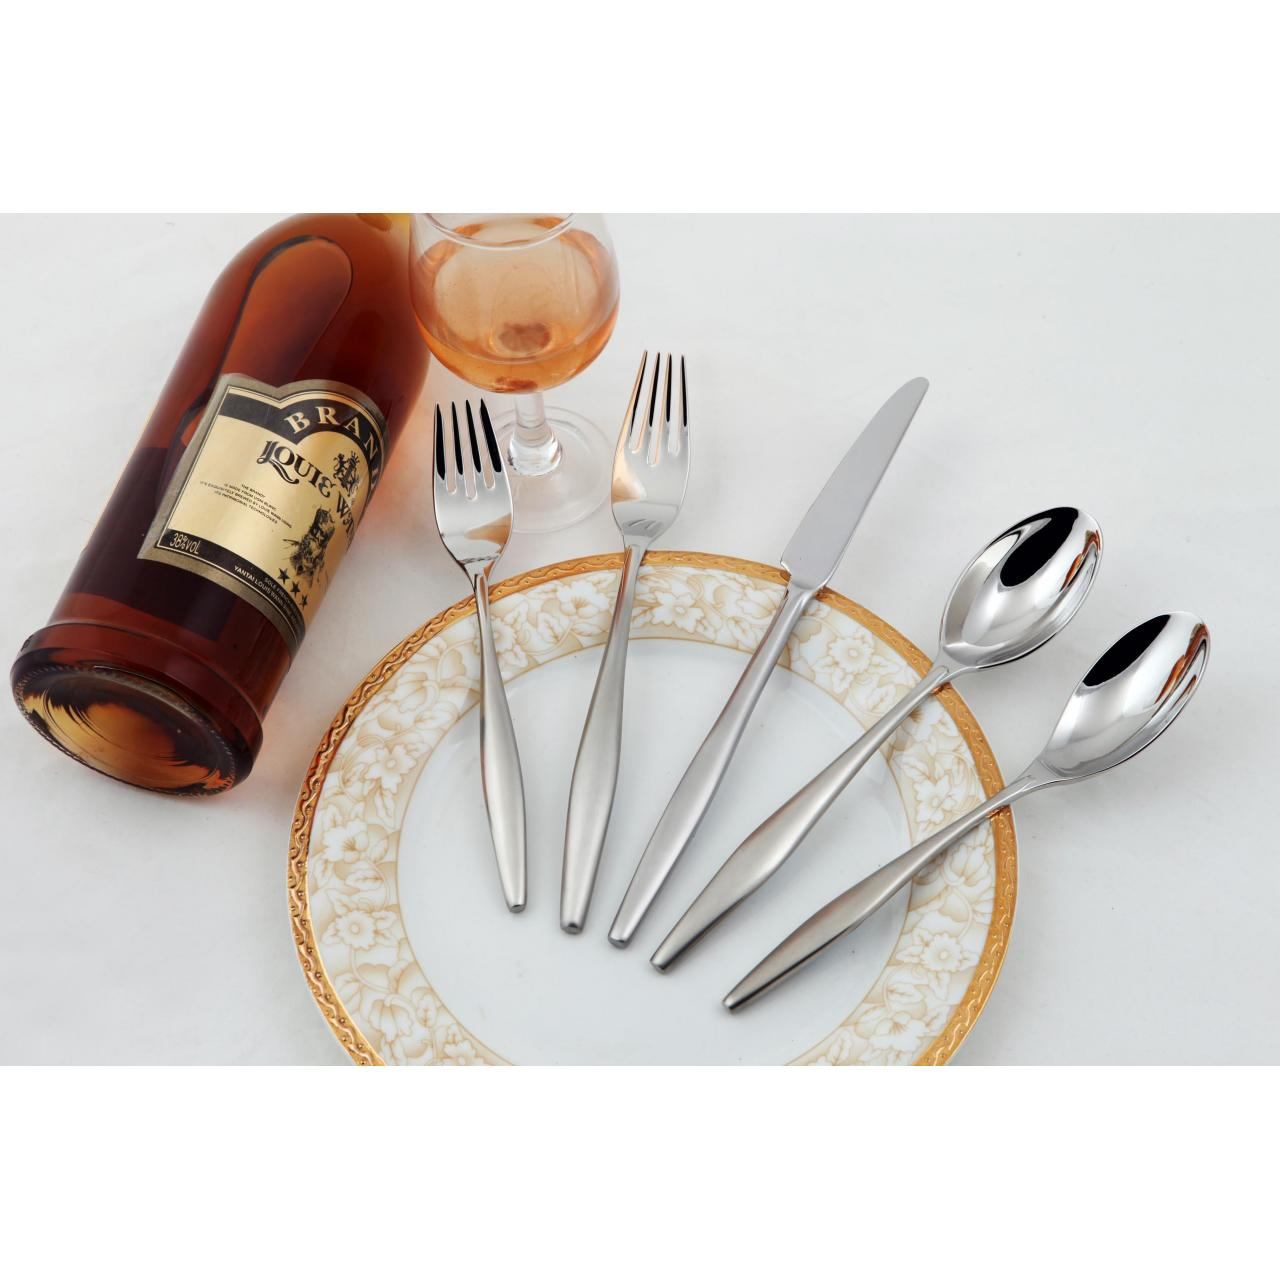 Tableware And Utensil Number: T-16 Manufactures